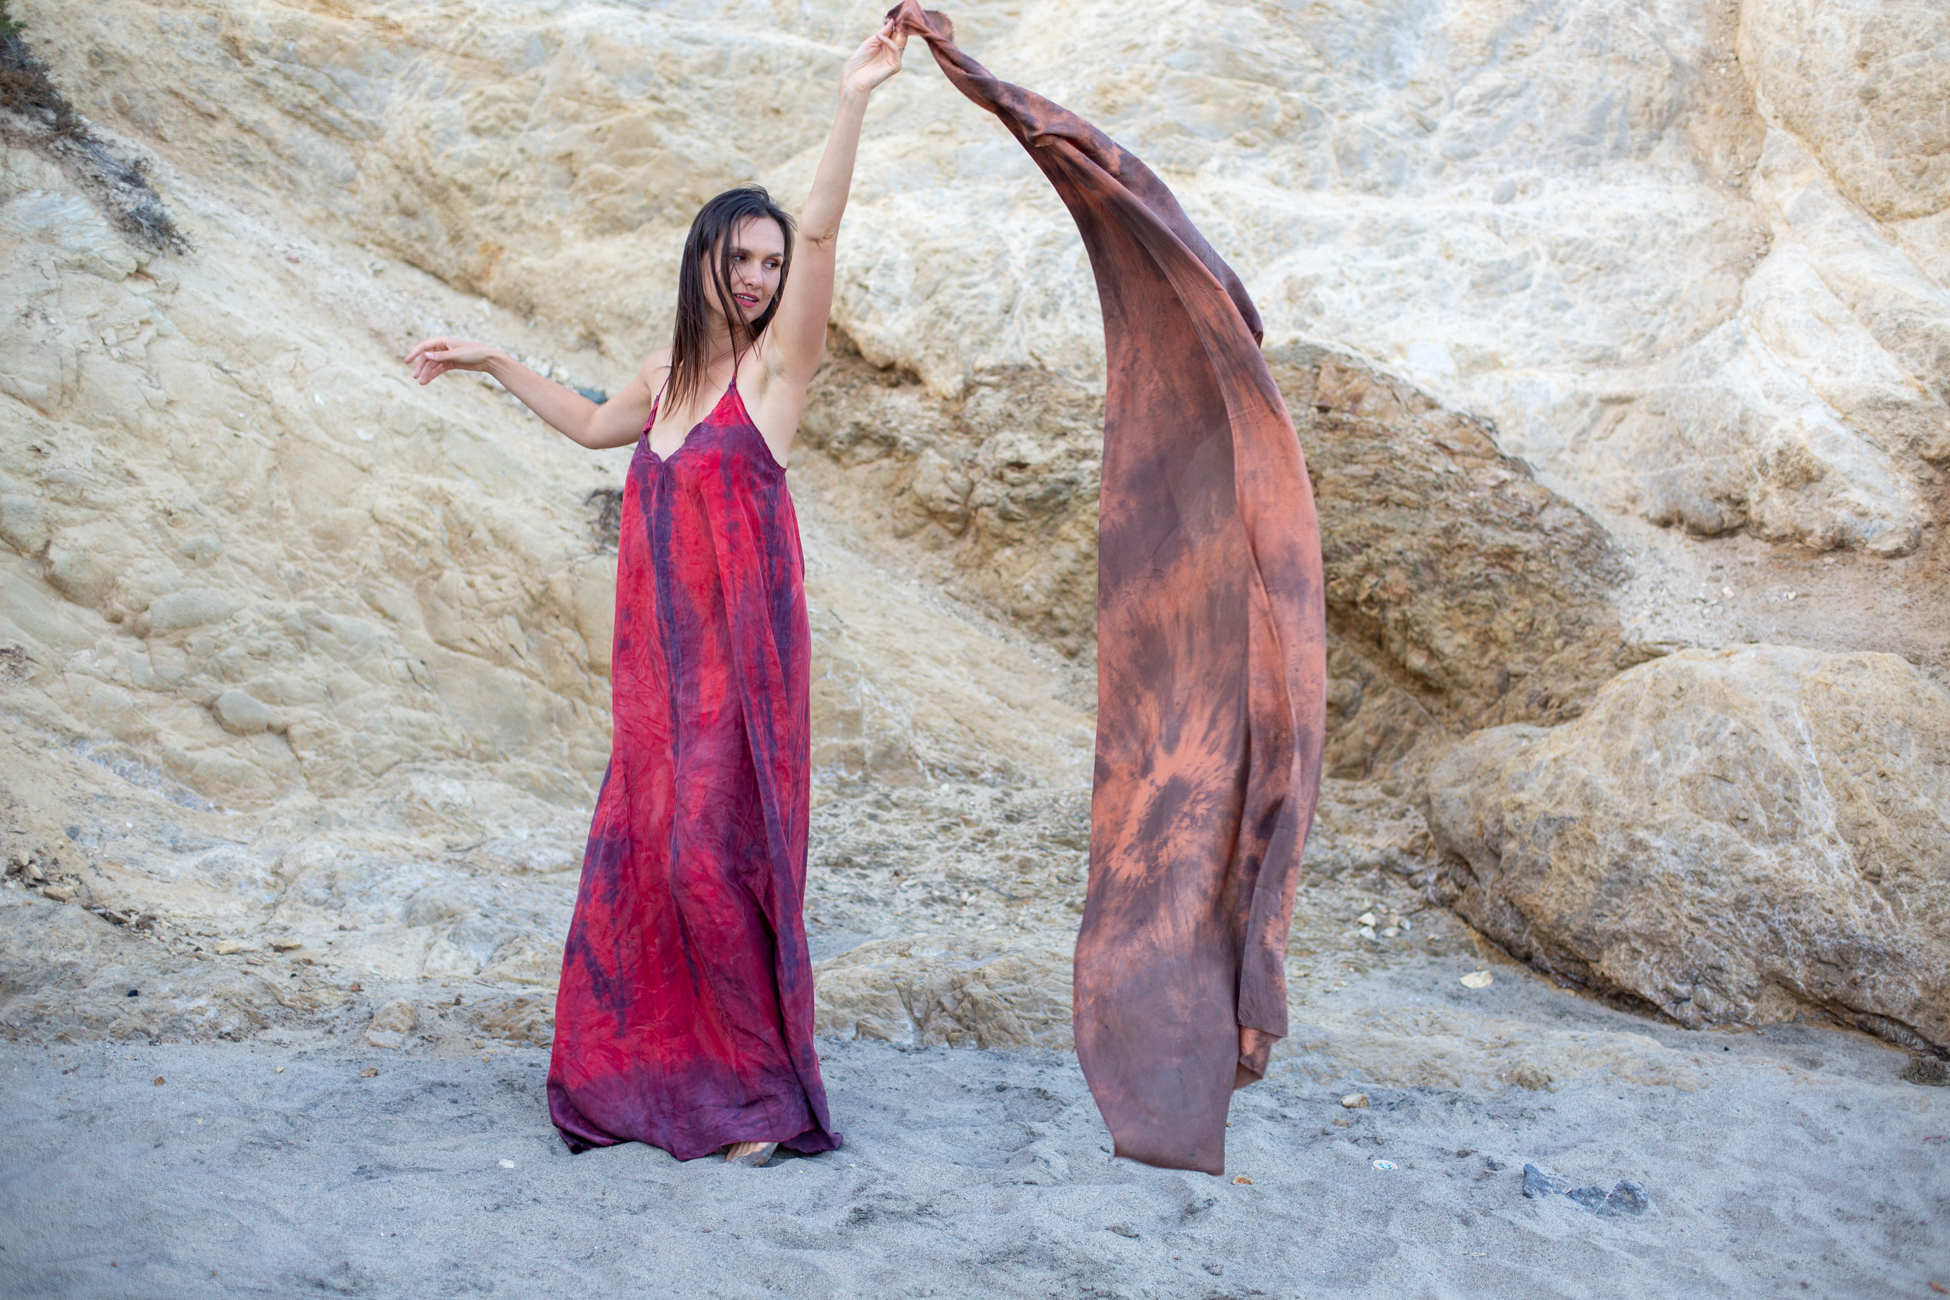 Fix 19. Photographing Hand-dyed textiles by  Atelier Maria Maurio  on Leo Carrillo Beach at sunset.